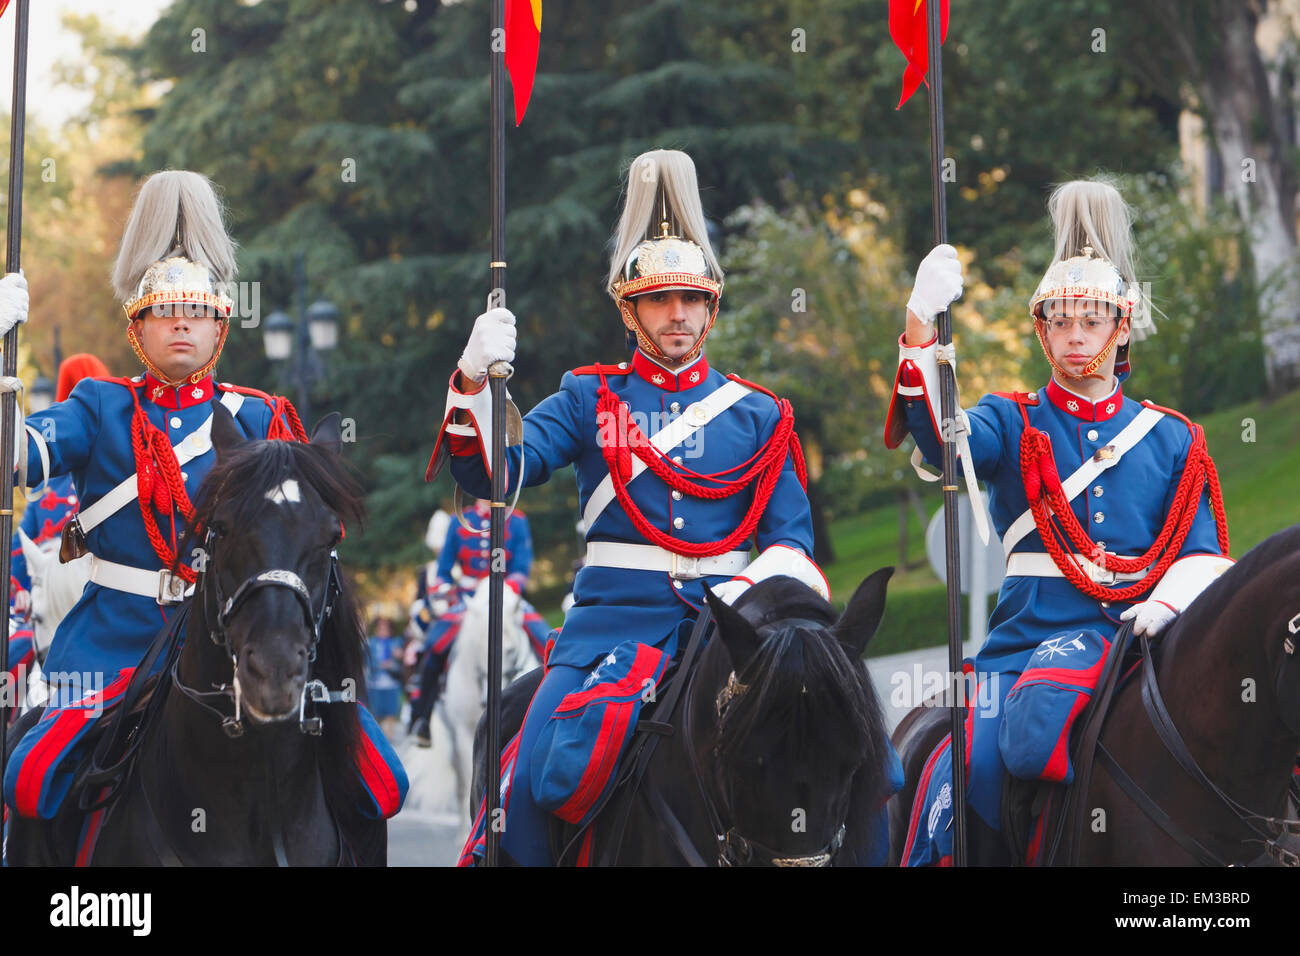 Lancers Of The Royal Guard; Madrid Spain - Stock Image